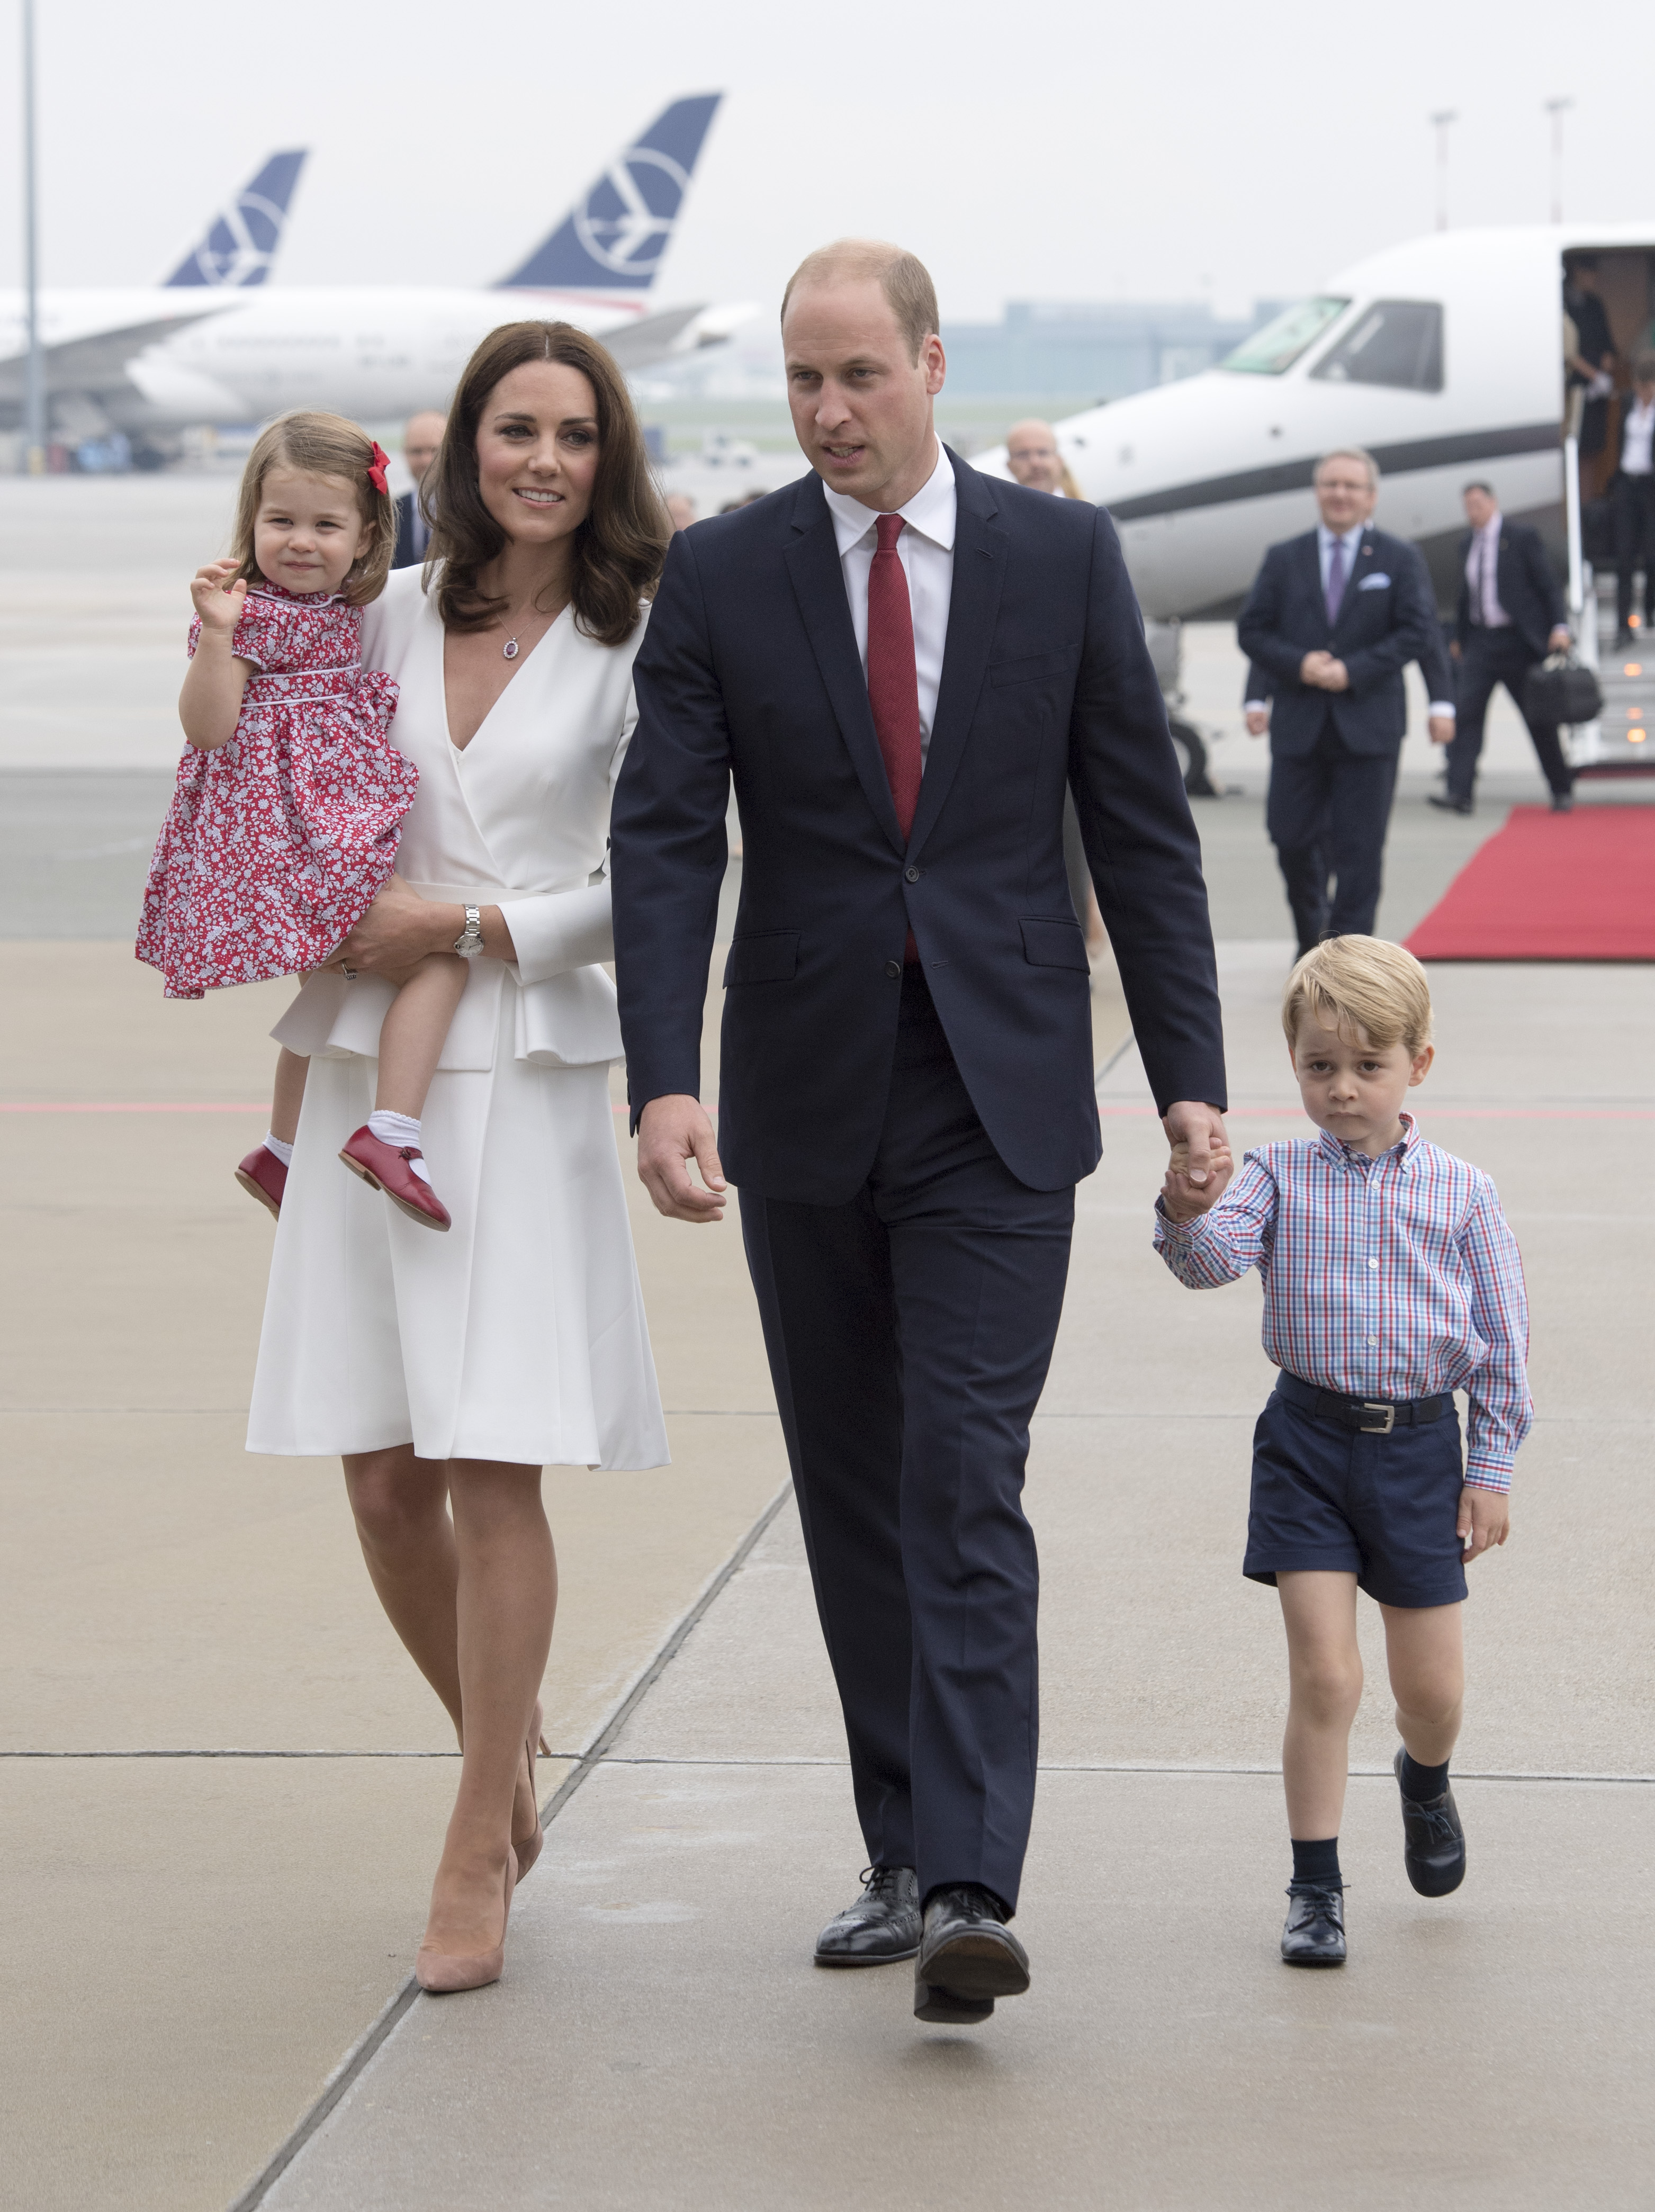 Príncipe William, Kate Middleton, Príncipe George y princesa Charlotte Príncipe William, Kate Middleton, Príncipe George y princesa Charlotte, estilo, moda, realeza, kate middleton